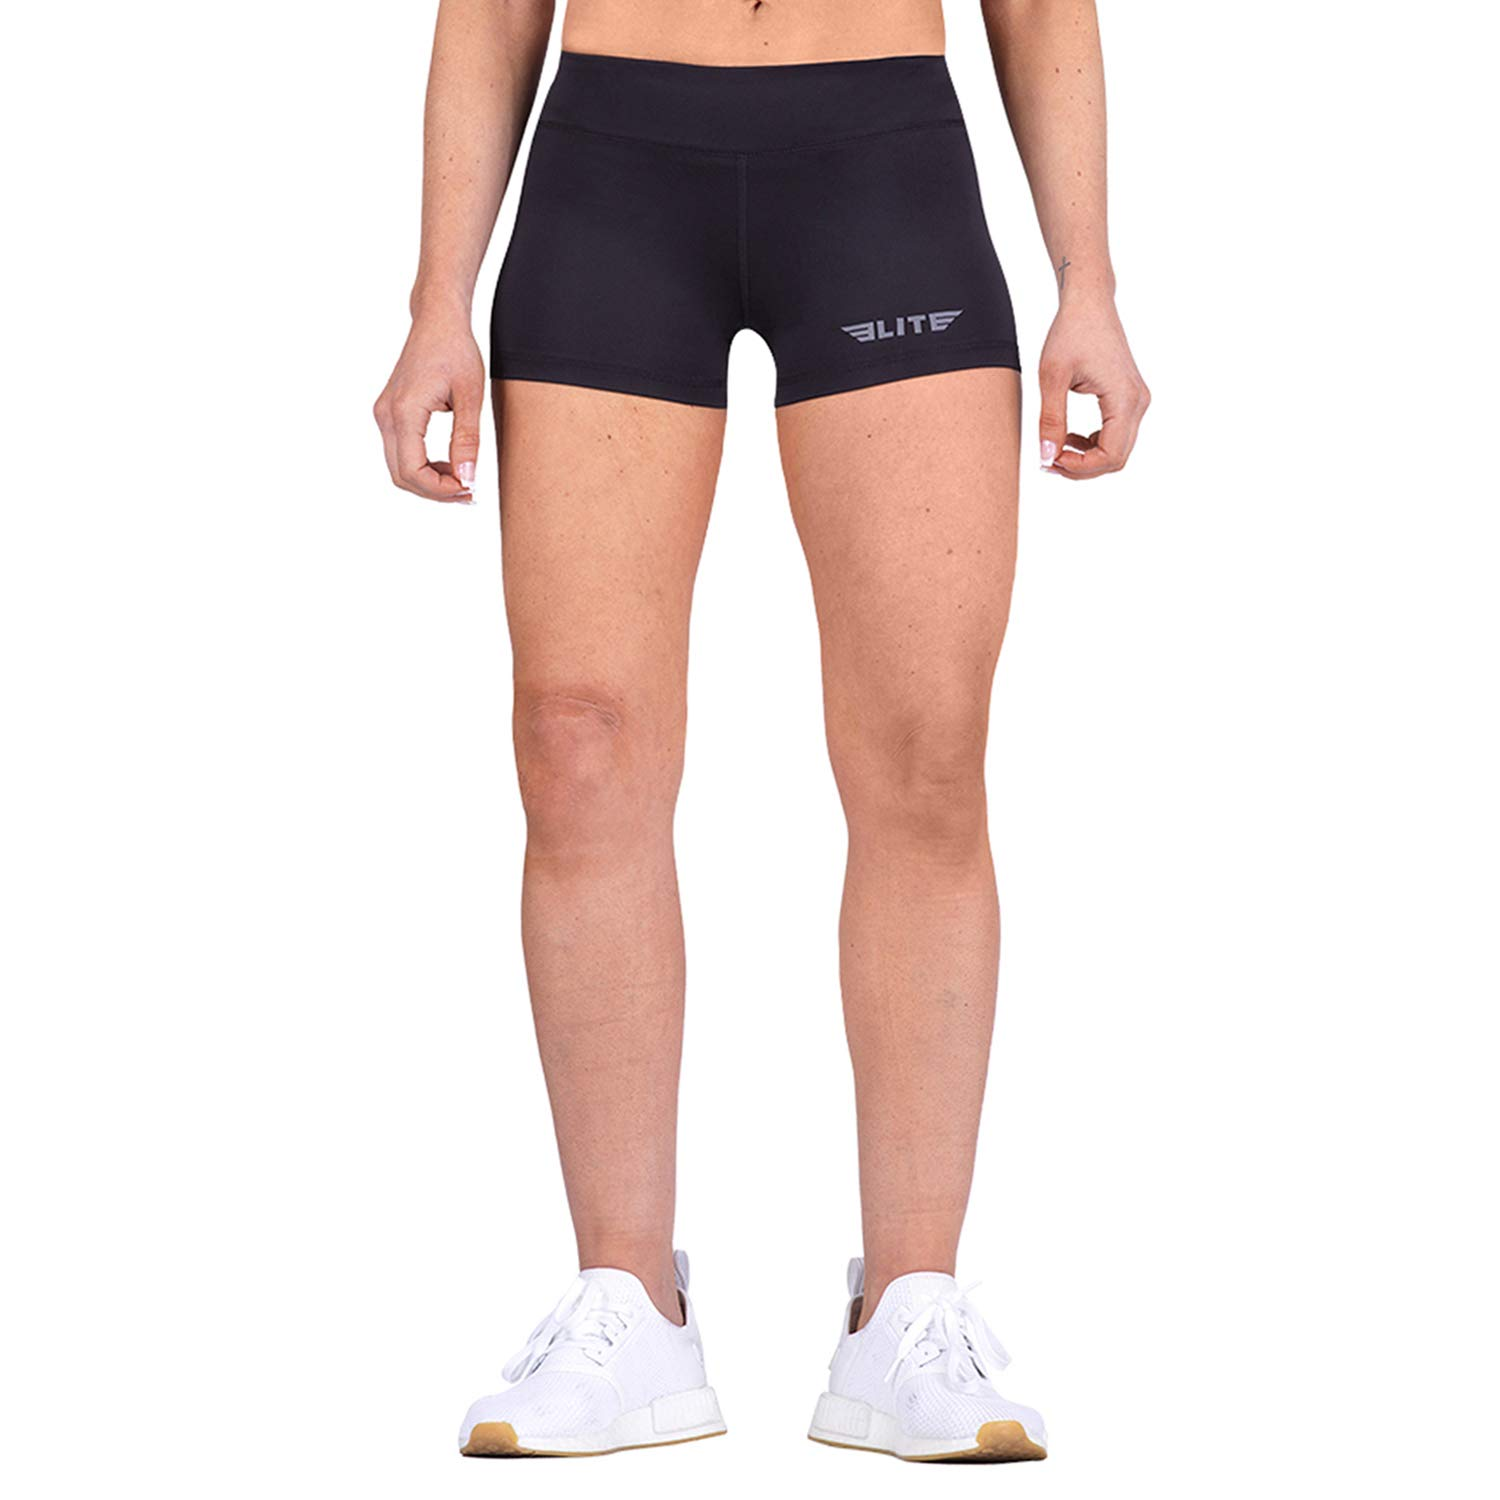 Elite Sports Women's Training Compression Shorts, Workout Running Exercise Yoga Shorts for Women